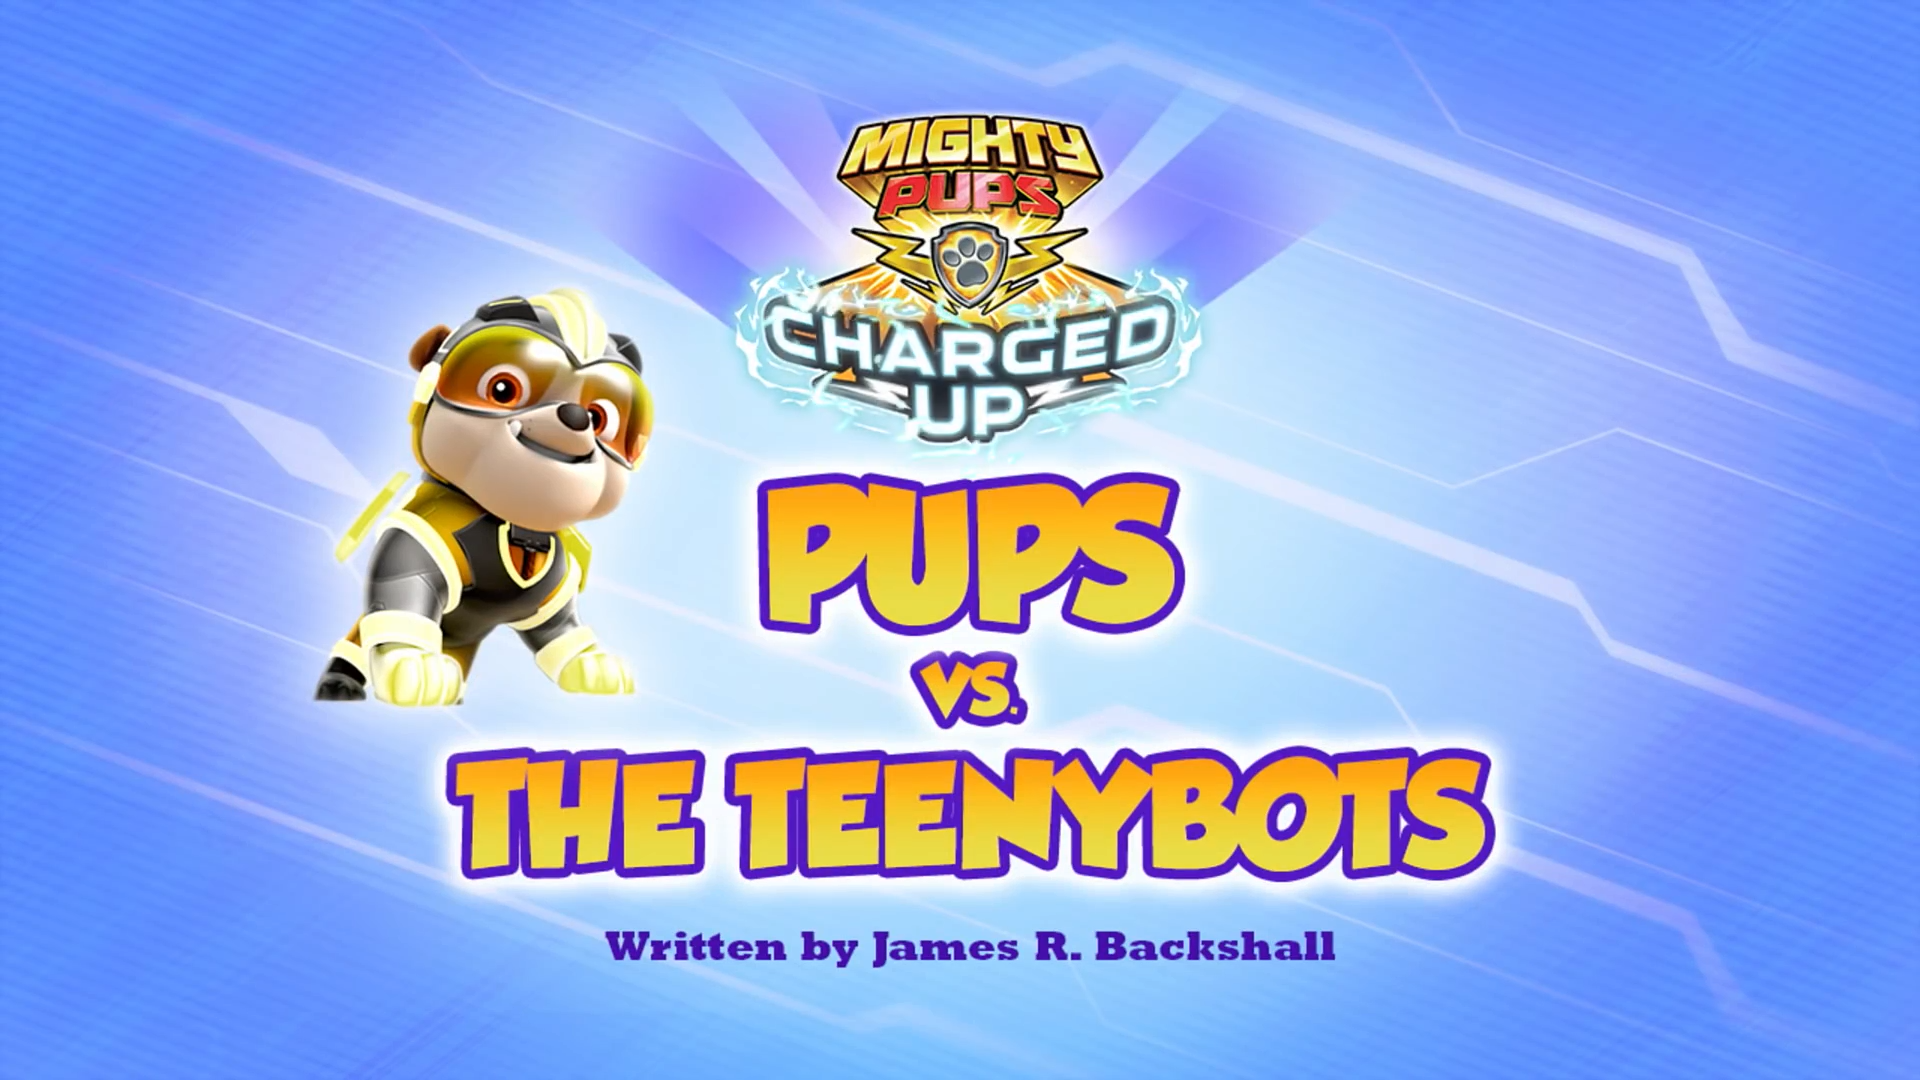 PAW Patrol Original 5s: Charged Up: Pups vs. the Teenybots